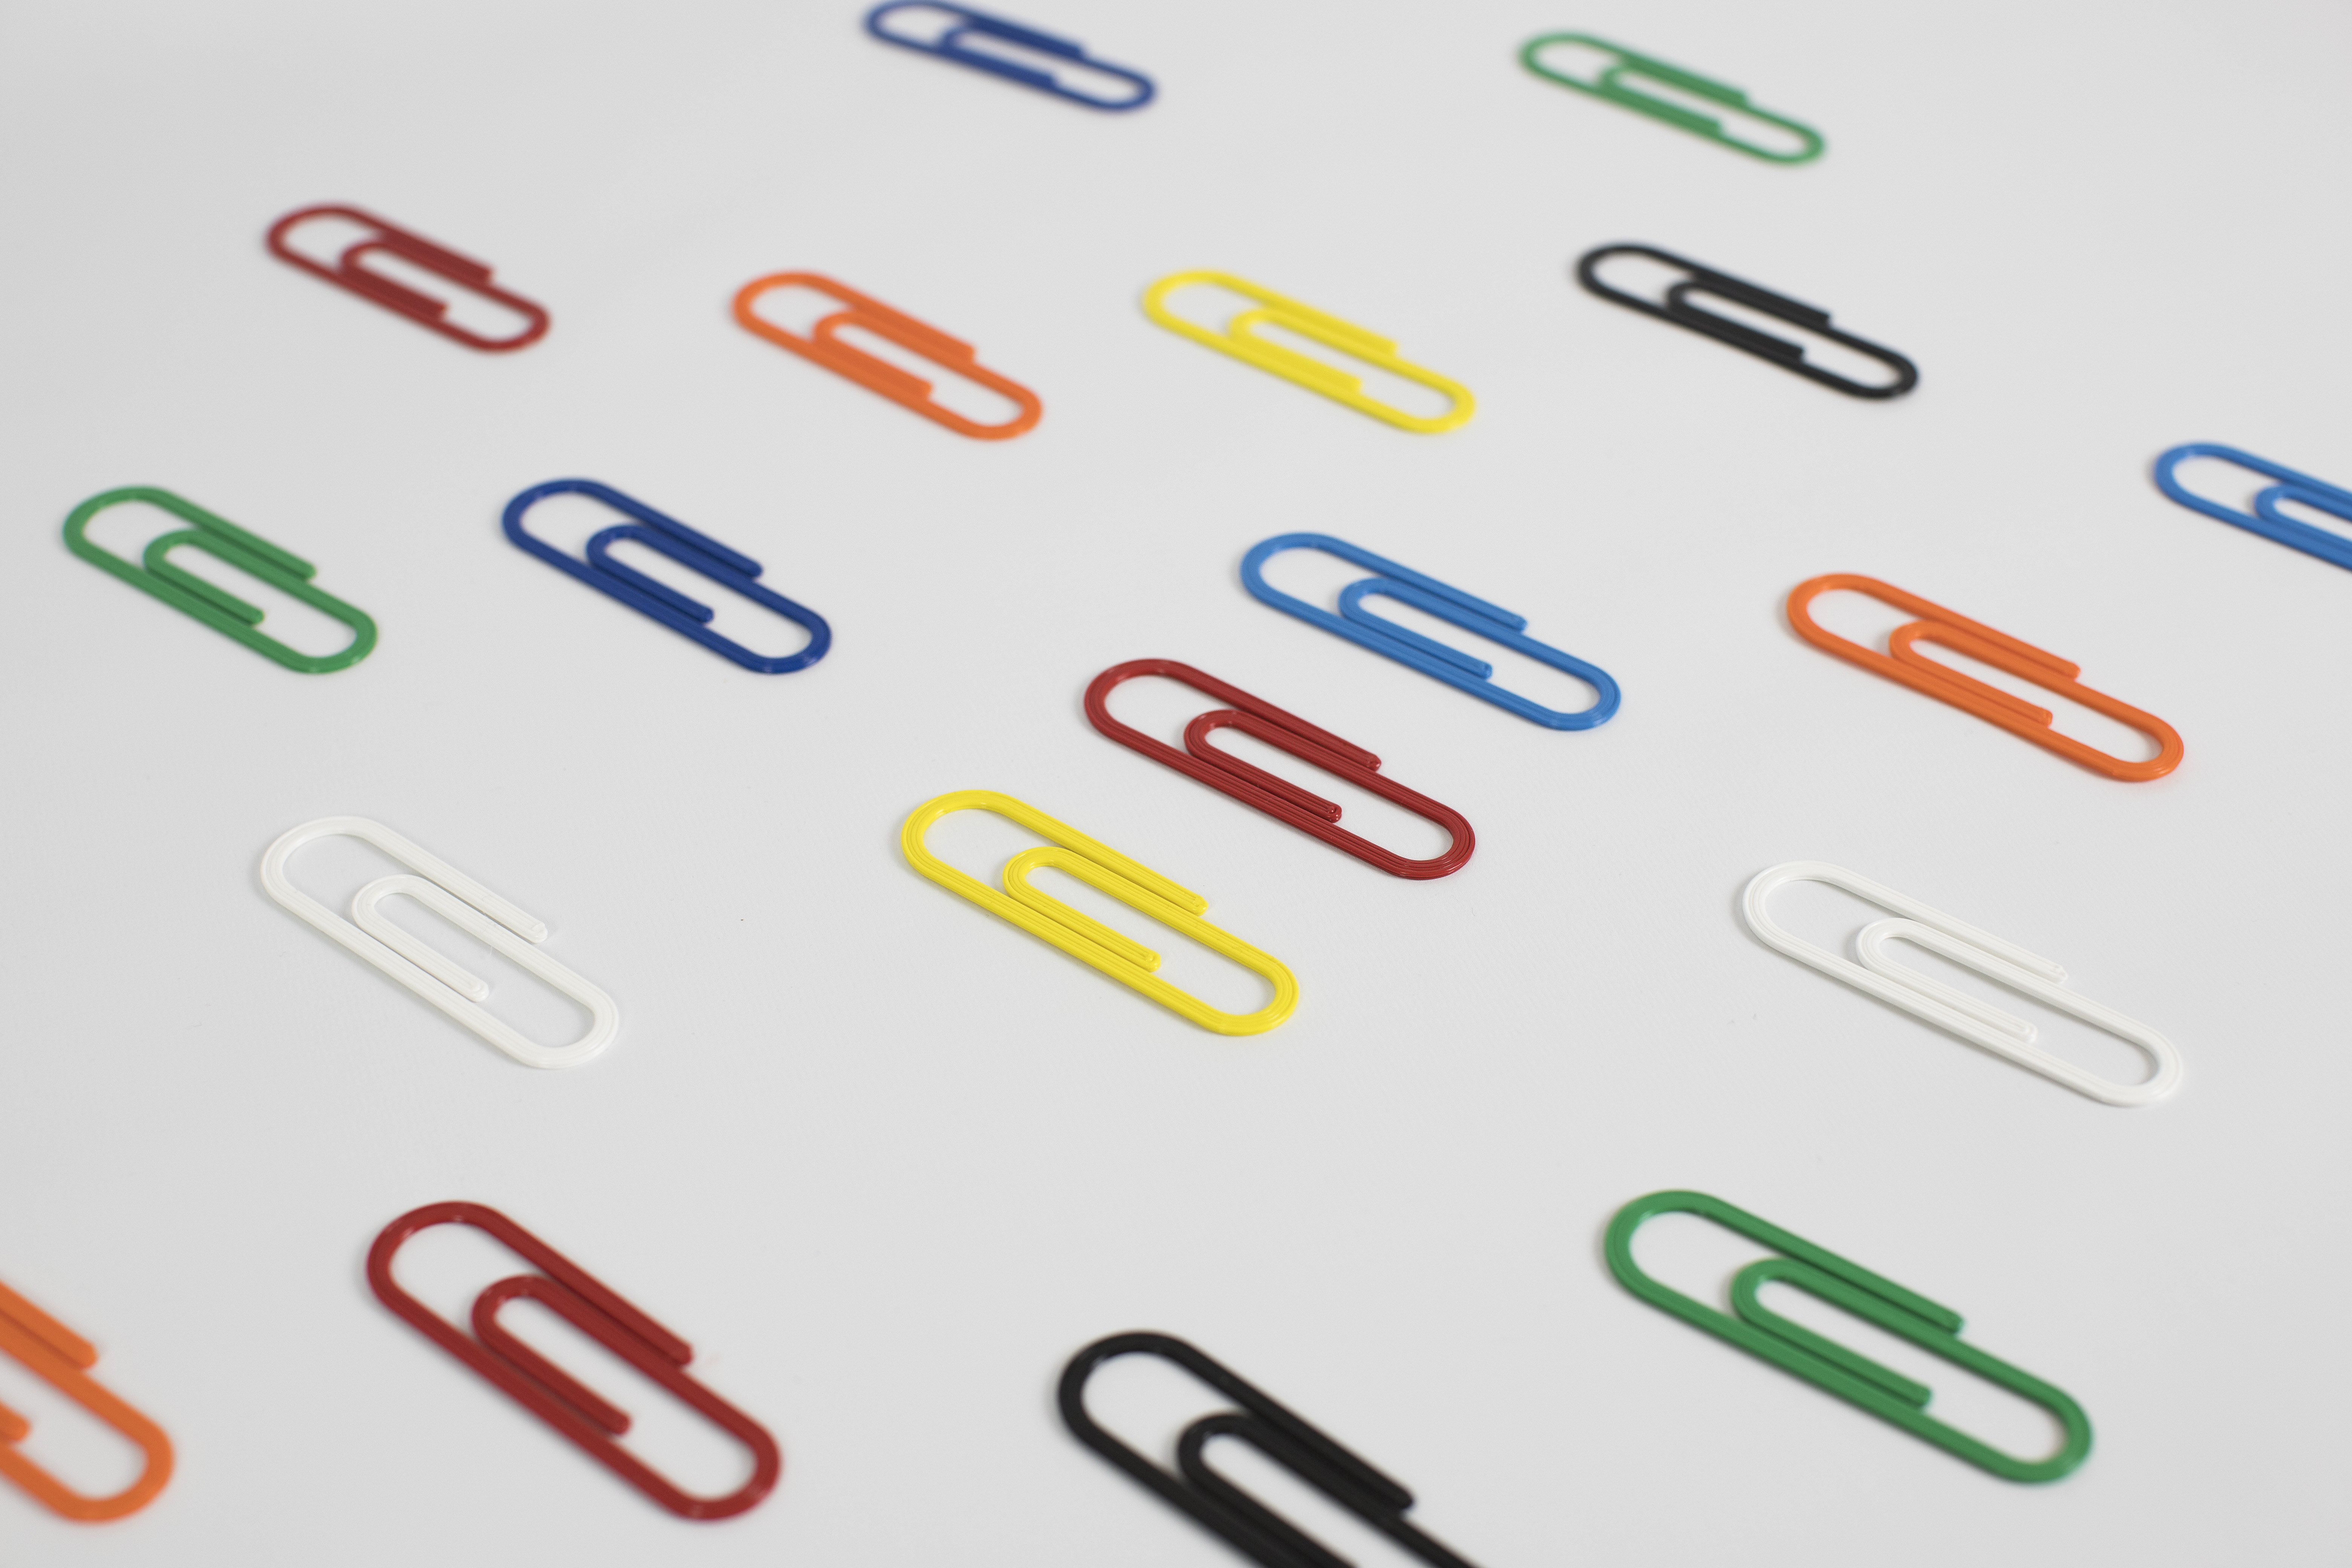 3D printed biodegradable paper clips for Paperchase. Photo via Batch.Works.